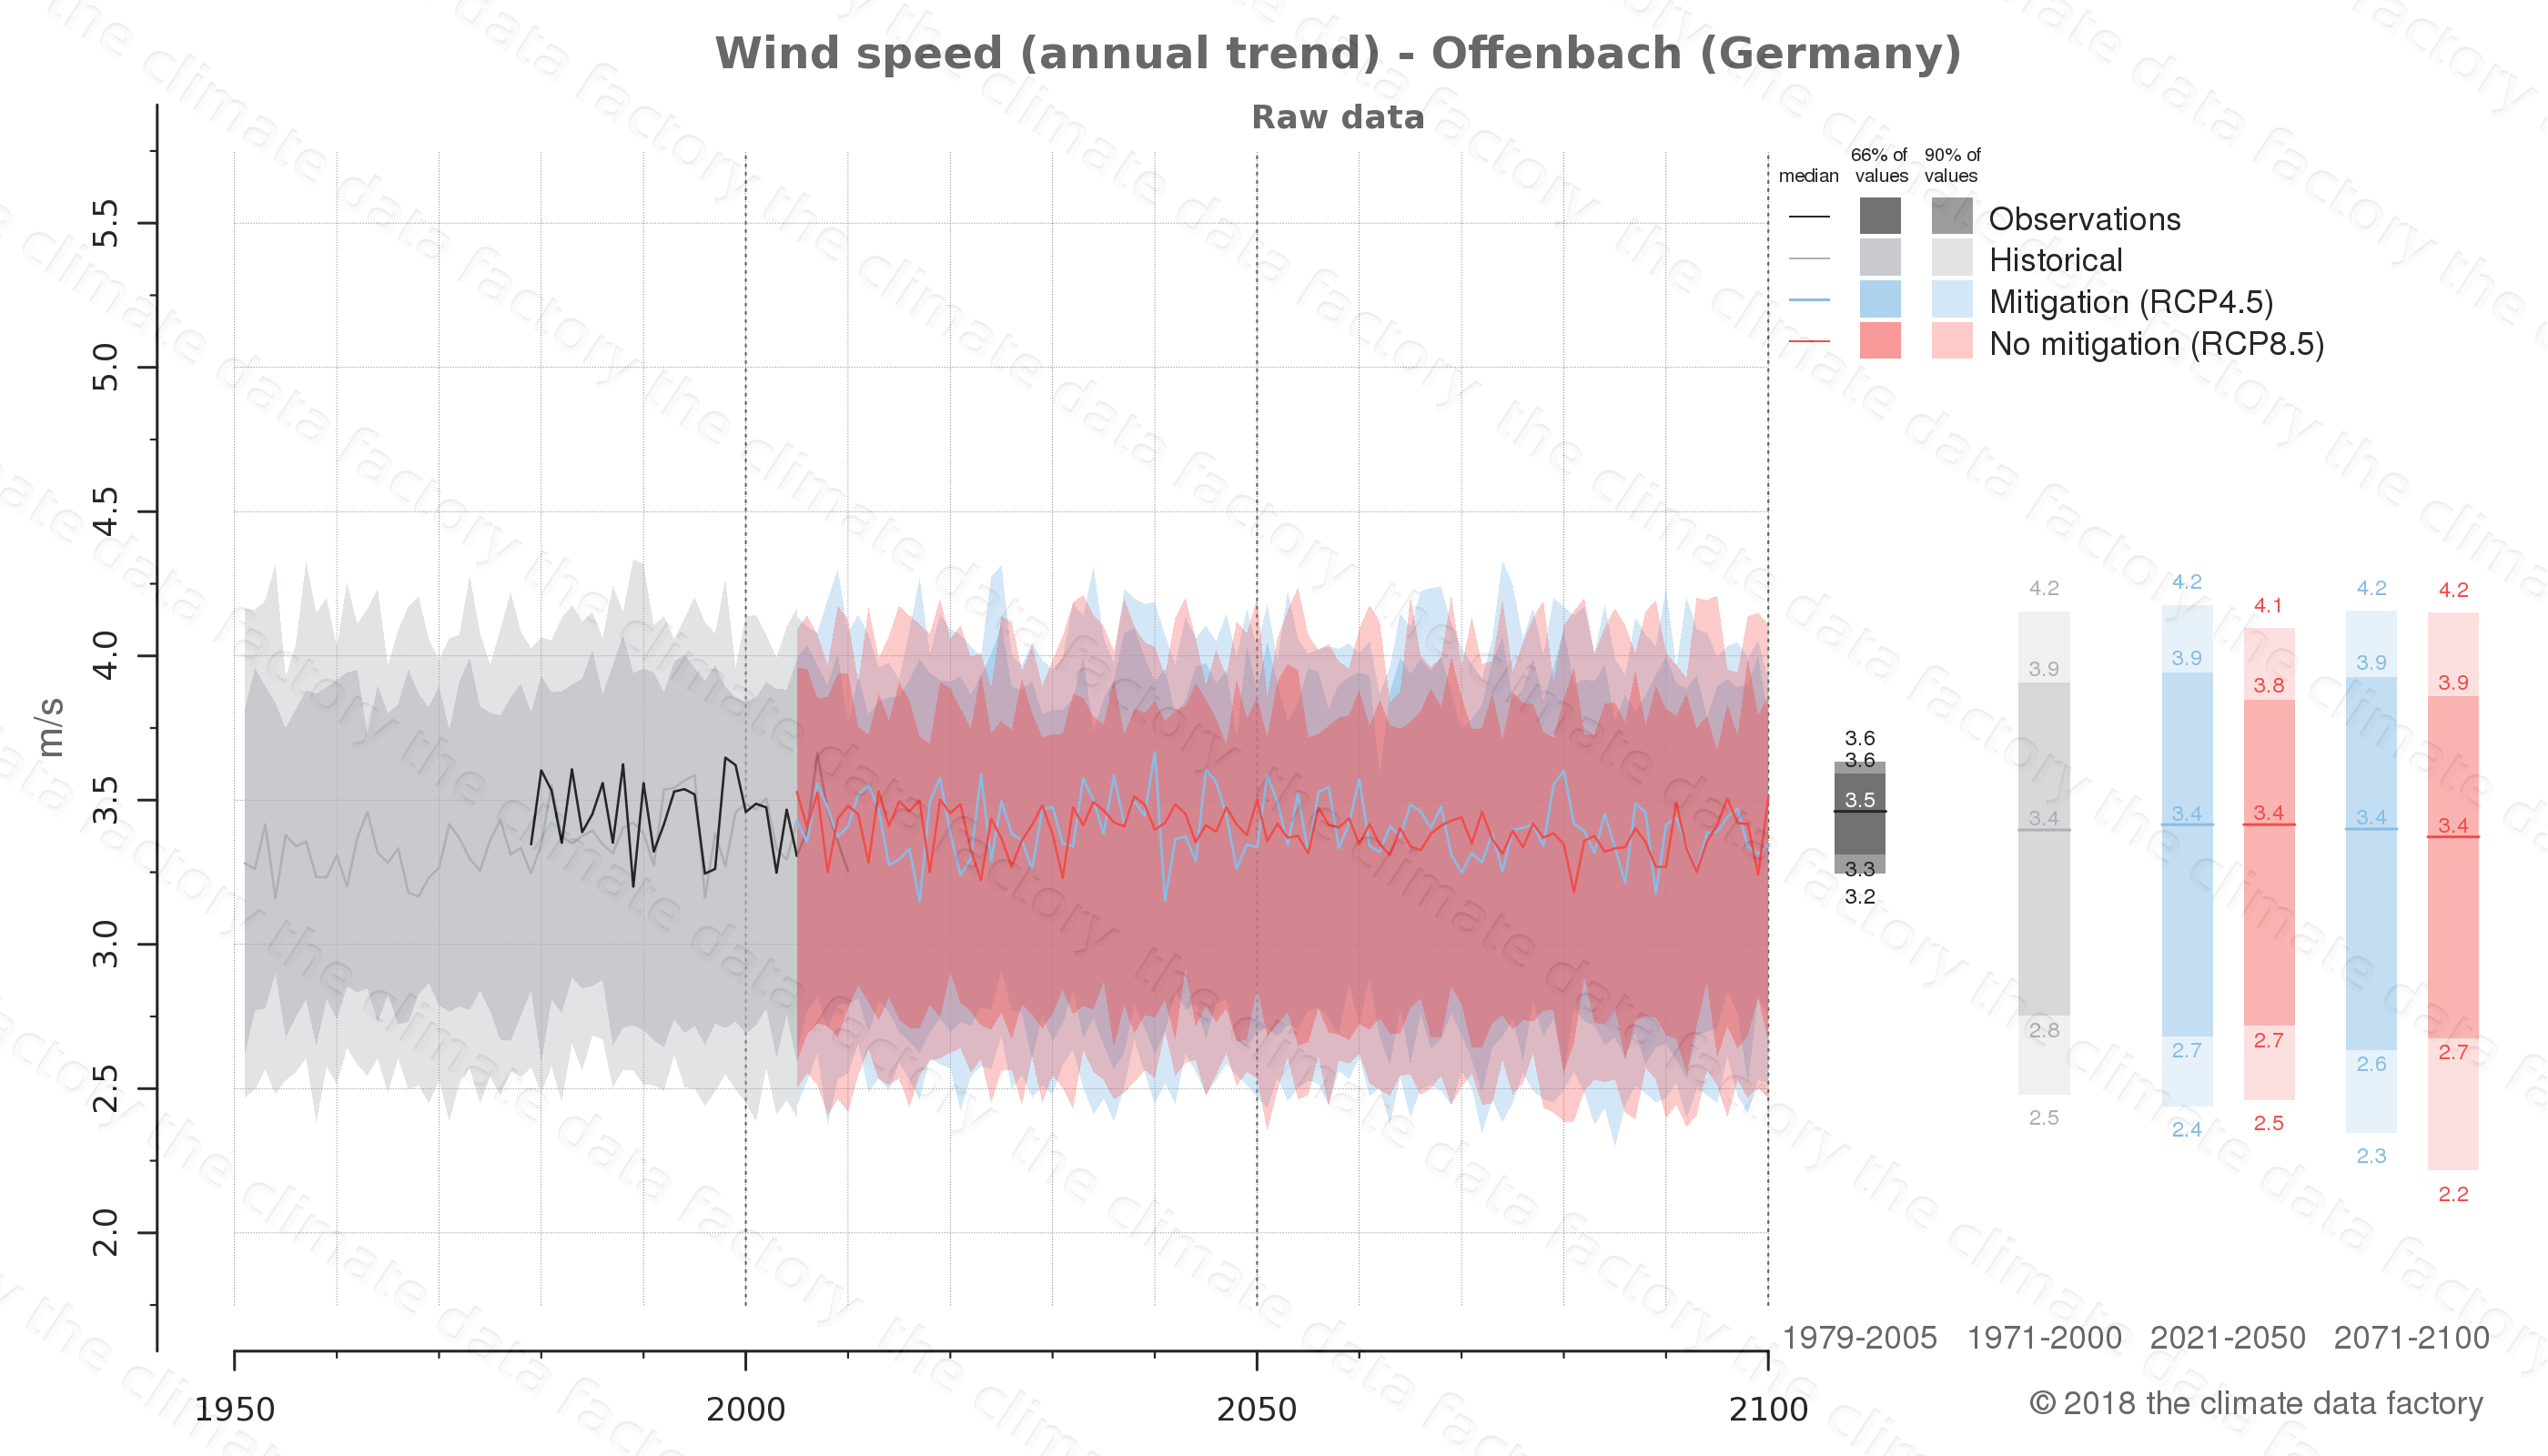 climate change data policy adaptation climate graph city data wind-speed offenbach germany